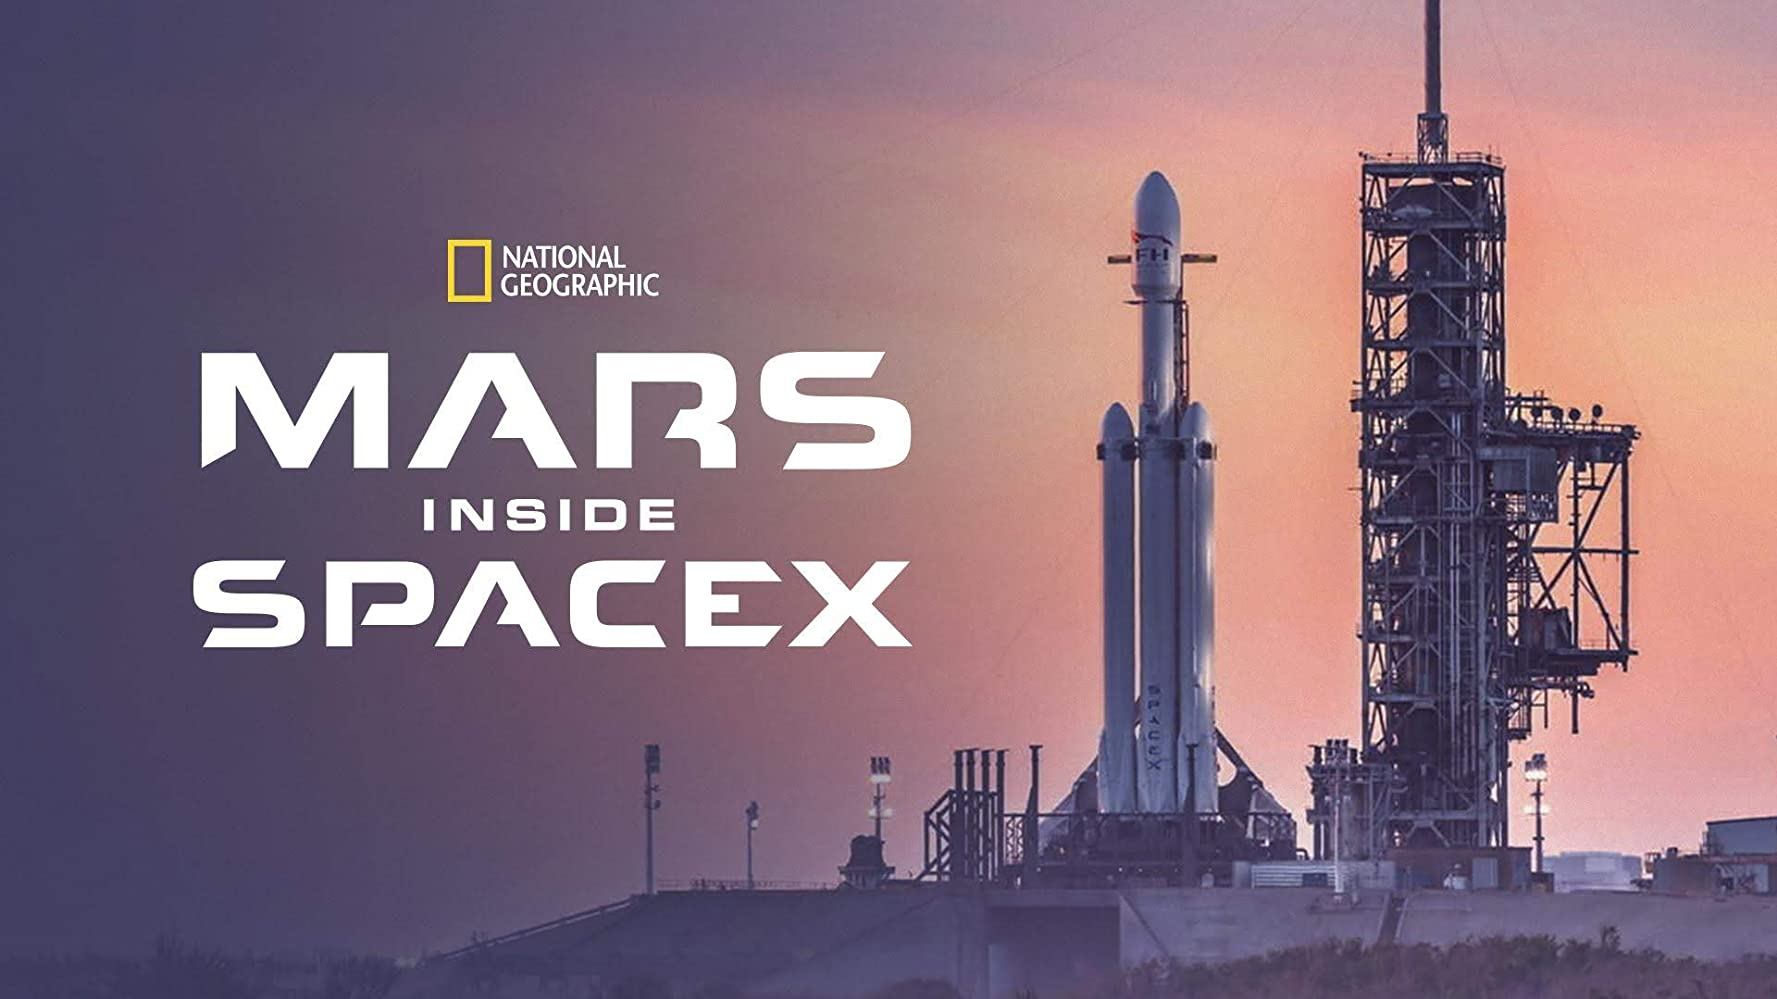 affiche poster mars inside spacex disney national geographic